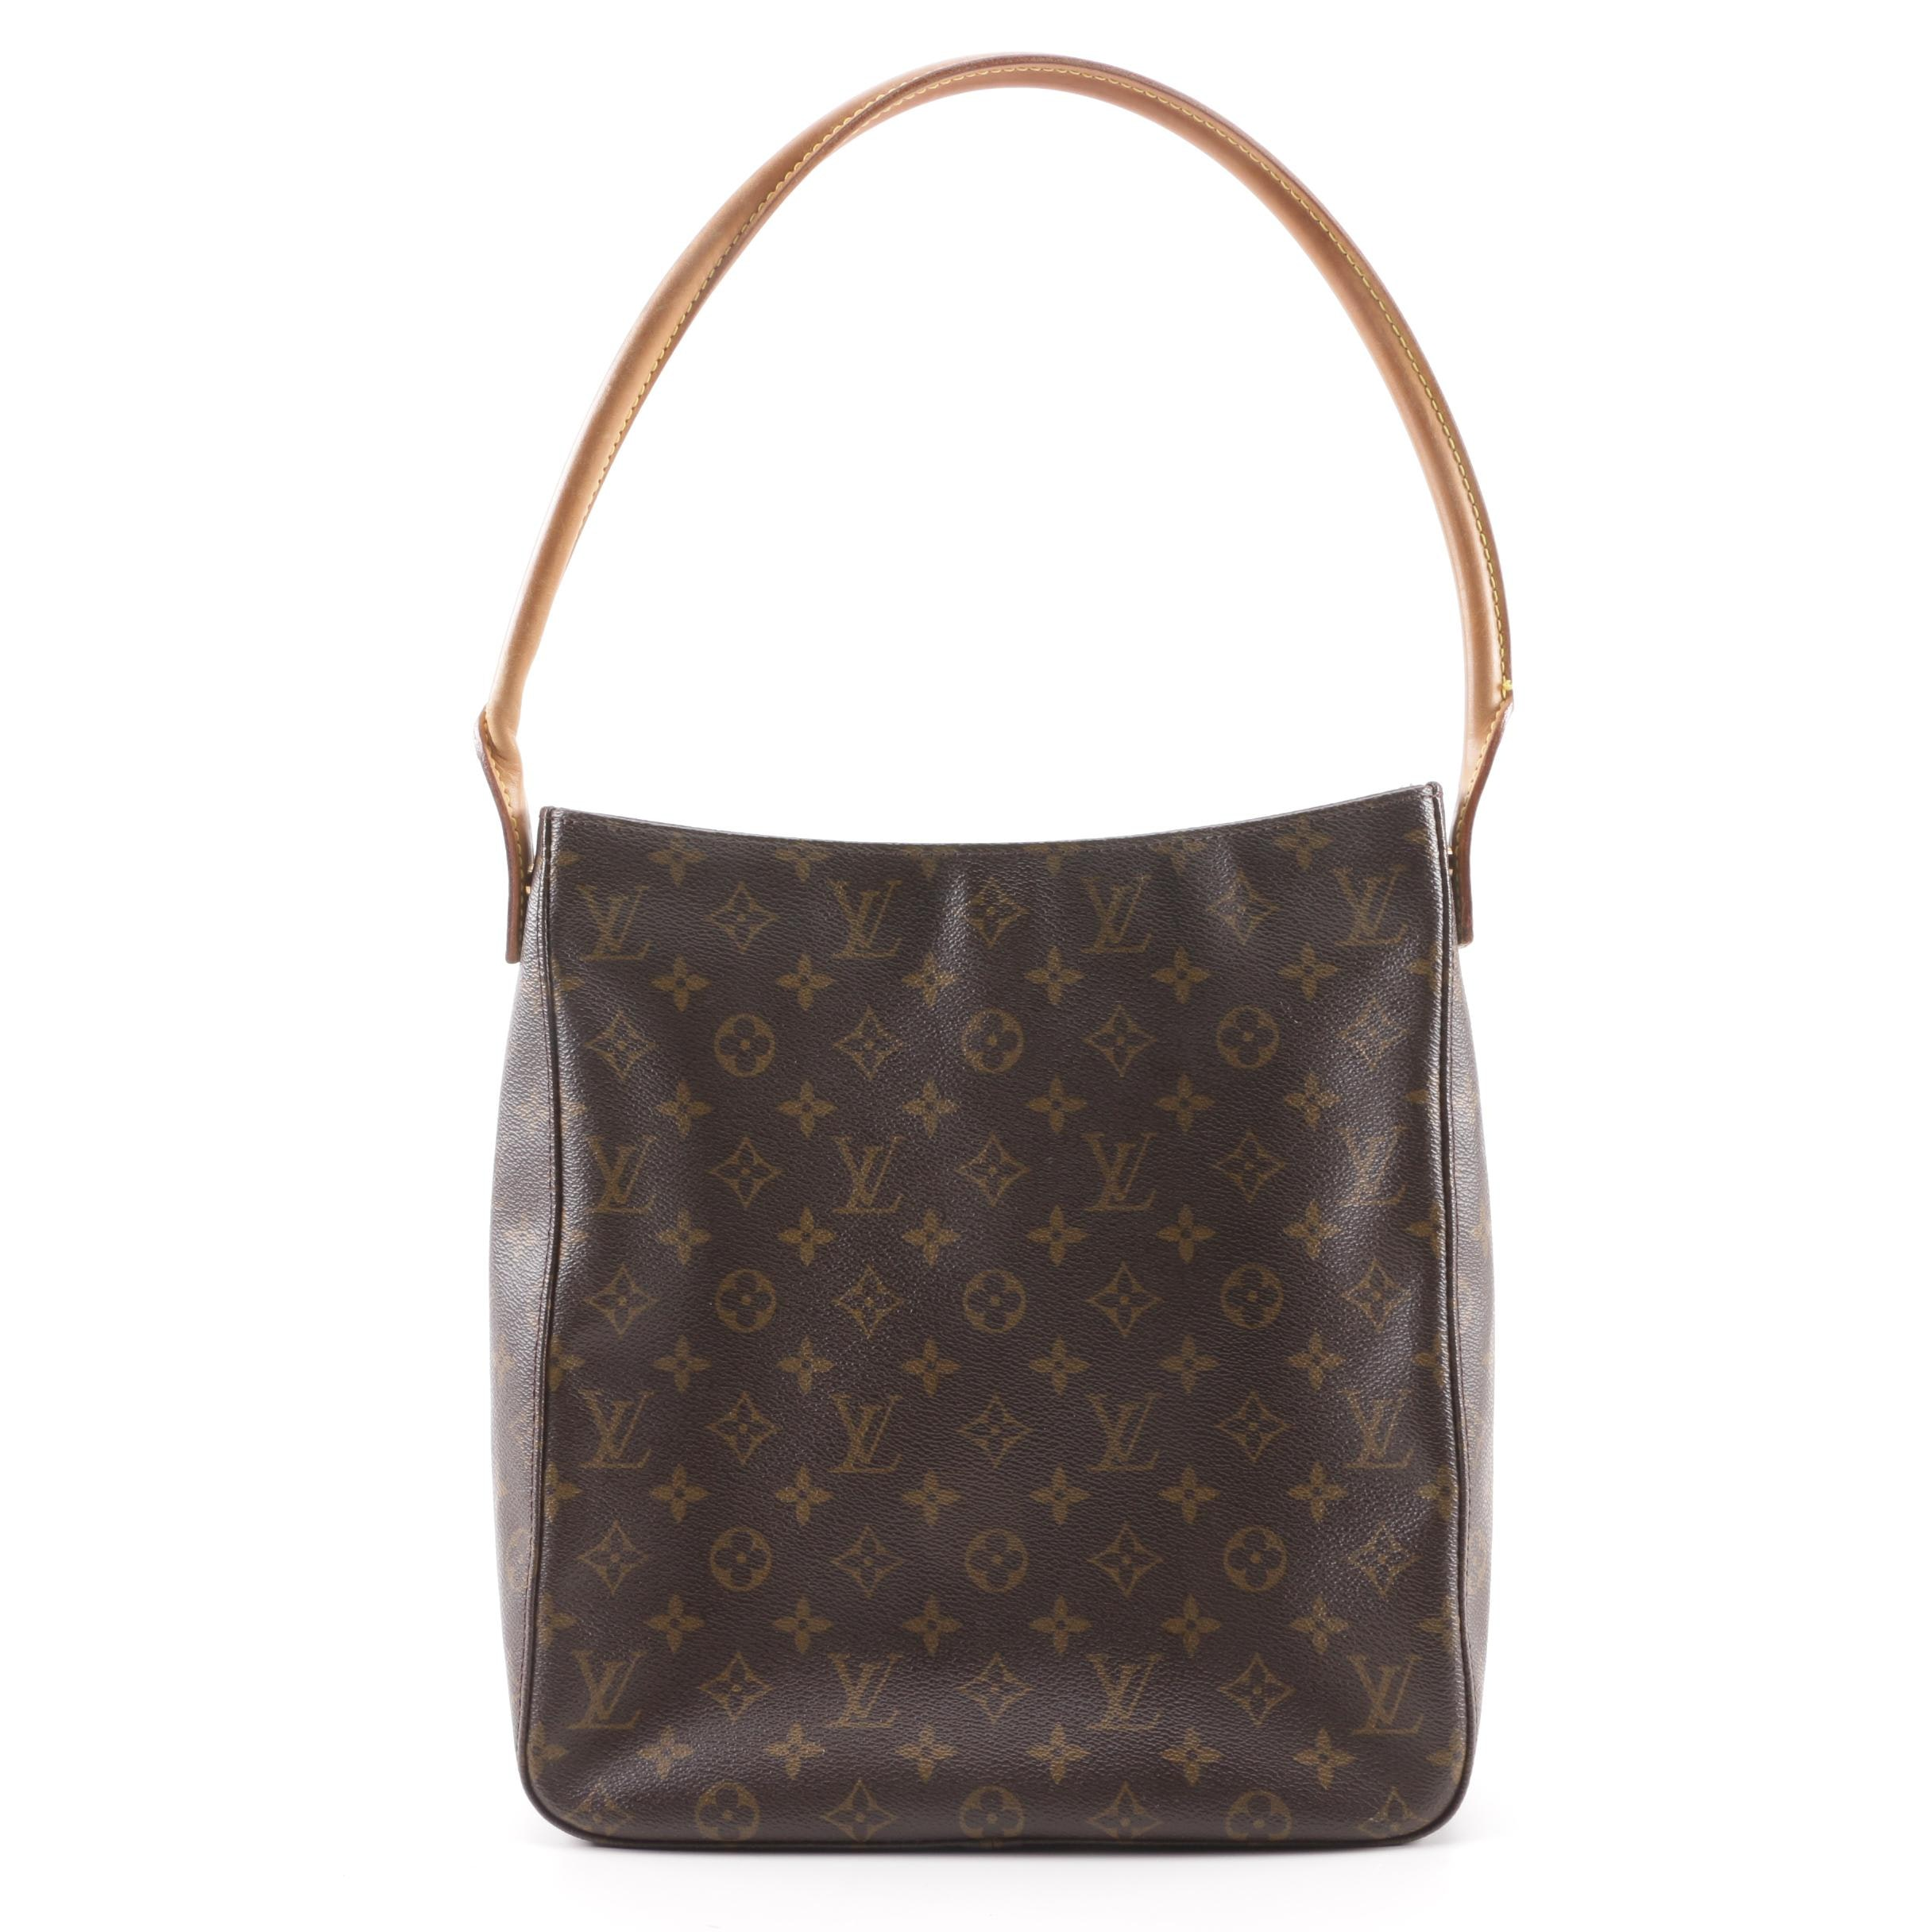 1999 Louis Vuitton Monogram Canvas Looping Tote